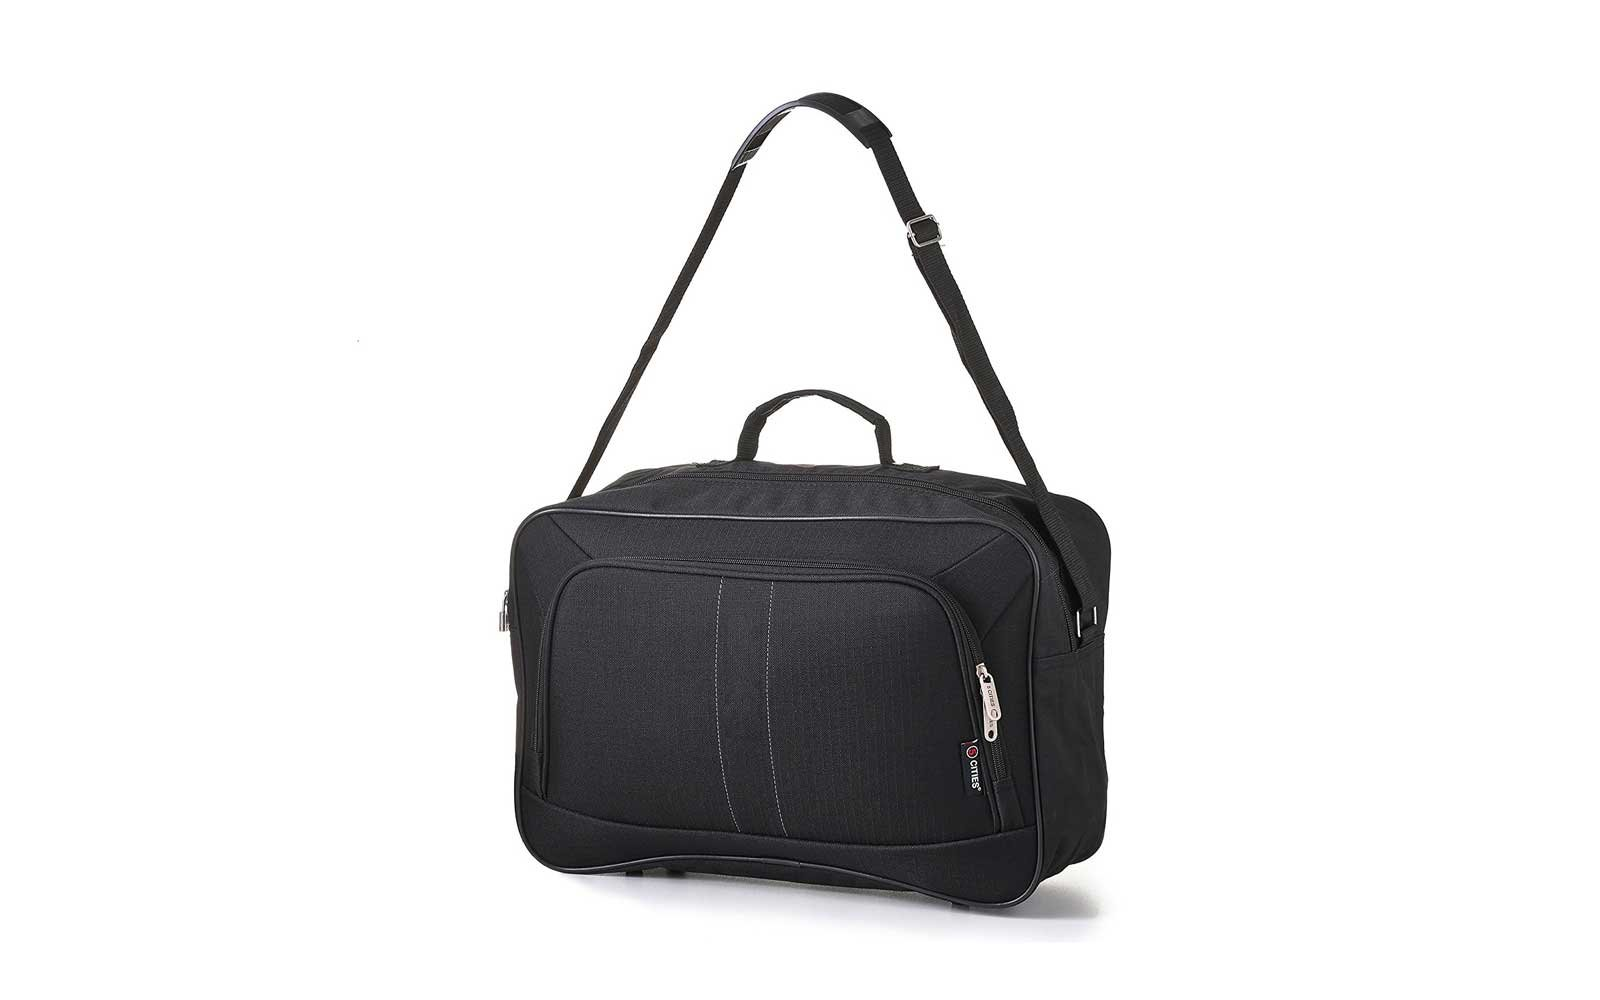 5 Cities 16-inch Carry-on Duffel Bag